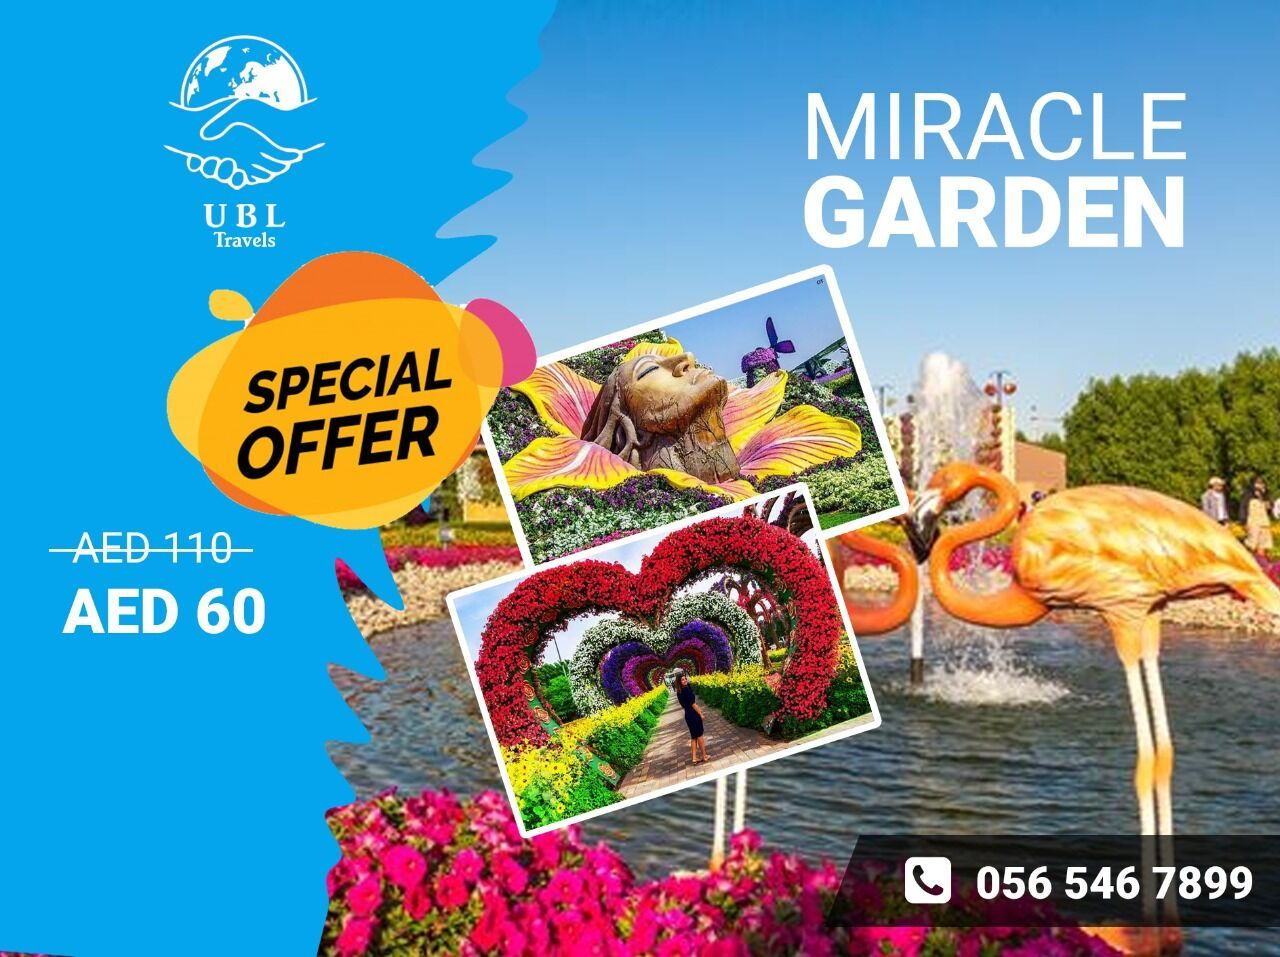 Do you want to see the unique flower garden in Dubai